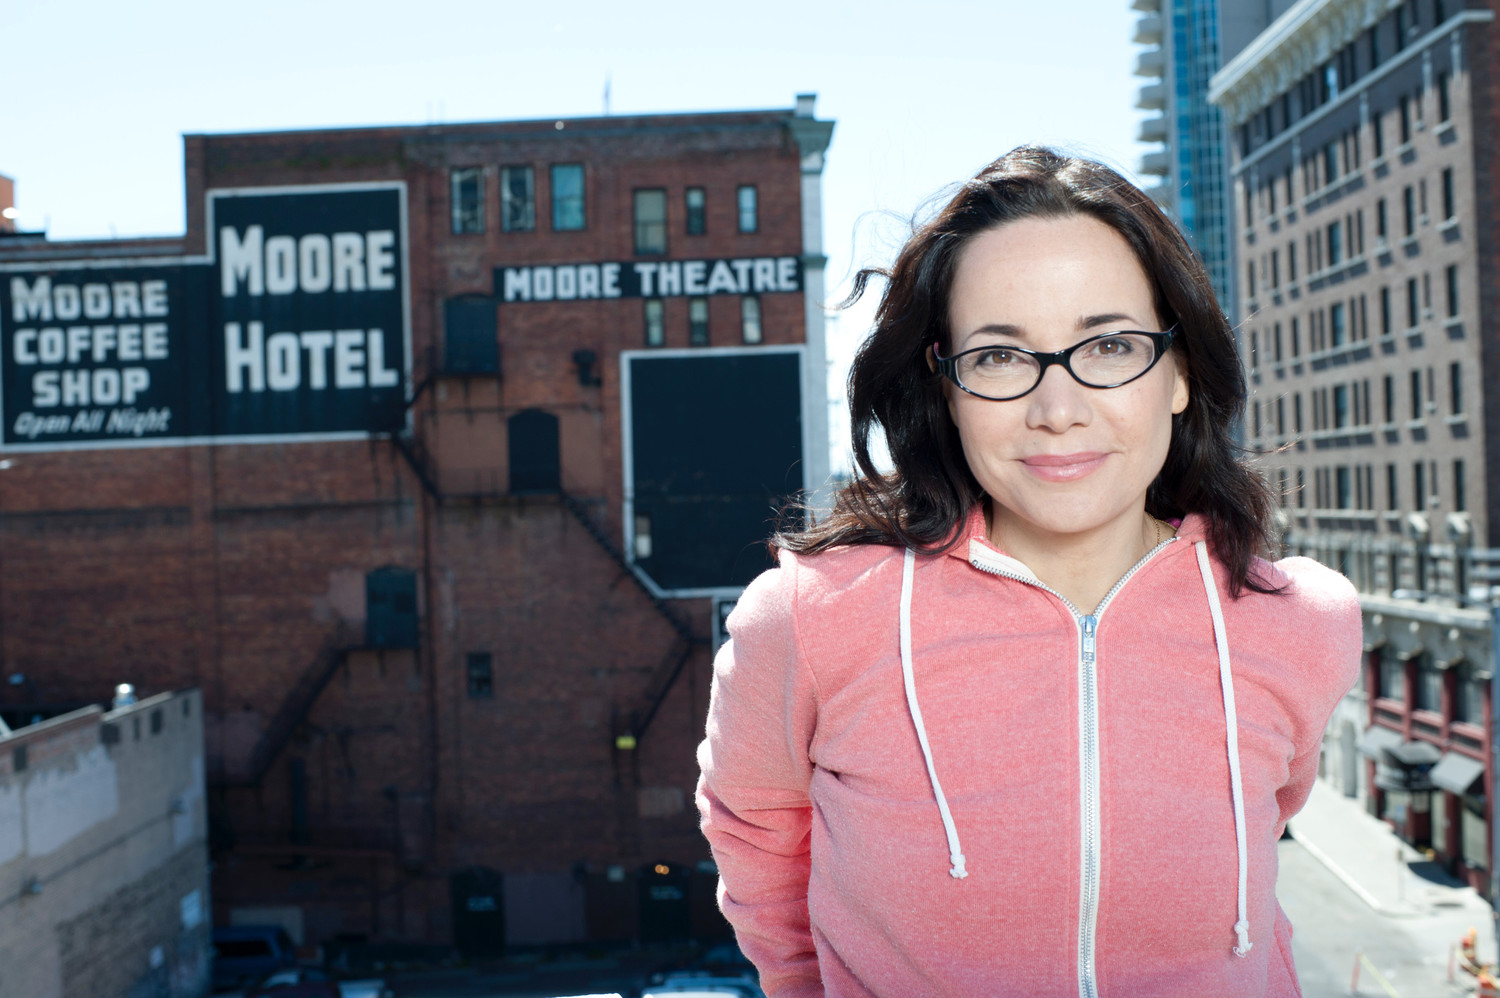 Janeane Garofalo brings is back on Long Island once again ready to speak her mind.